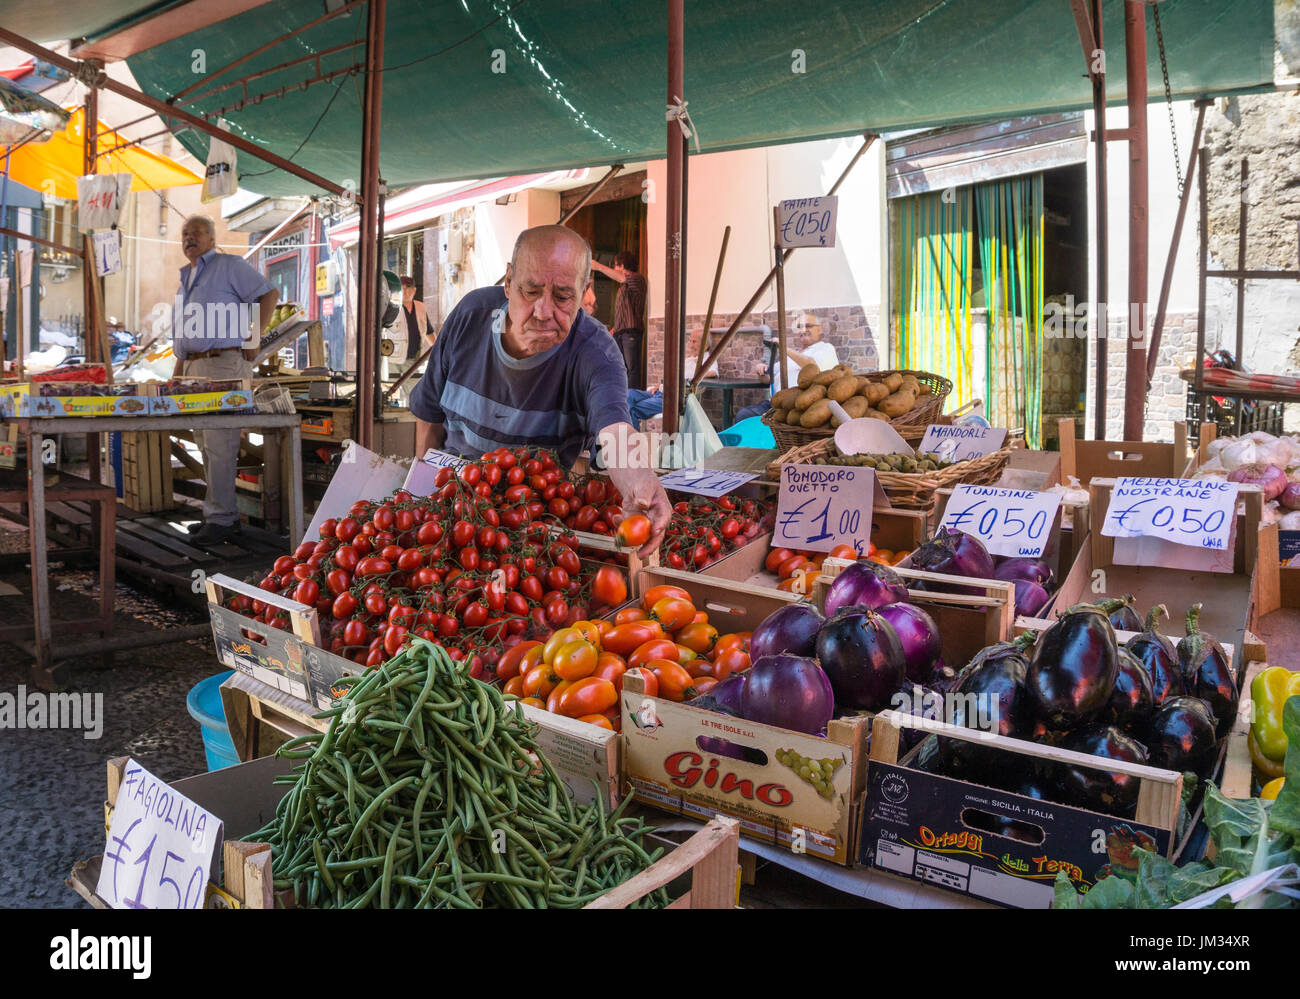 Fruit and egetable stall in The Ballaro Market in the Albergheria district of central Palermo, Sicily, Italy. - Stock Image